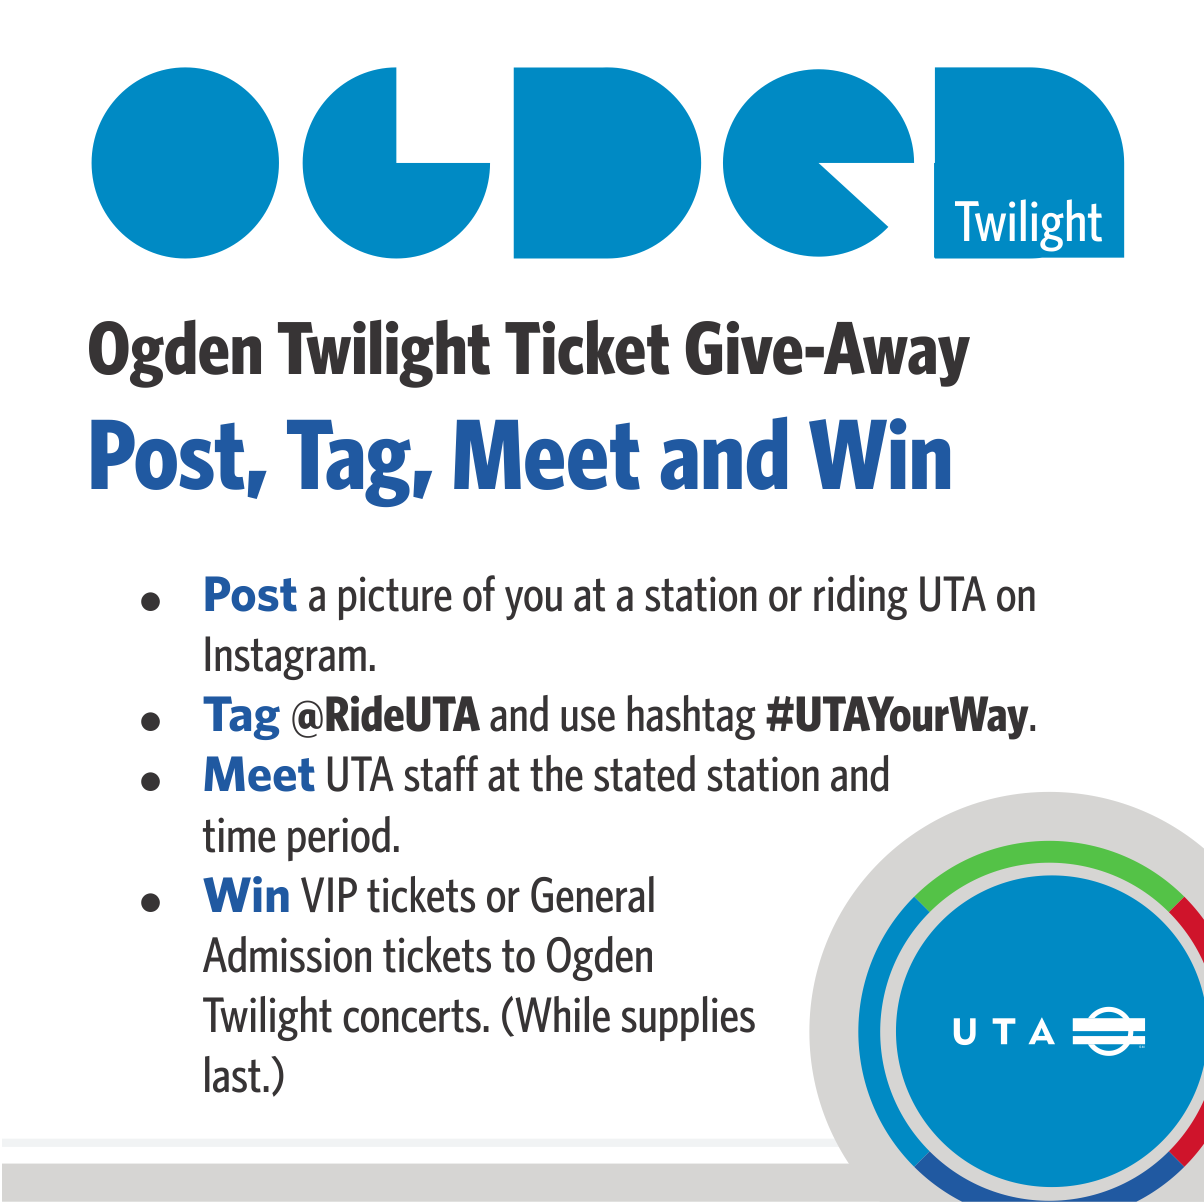 UTA's Ogden Twilight Ticket Giveaway